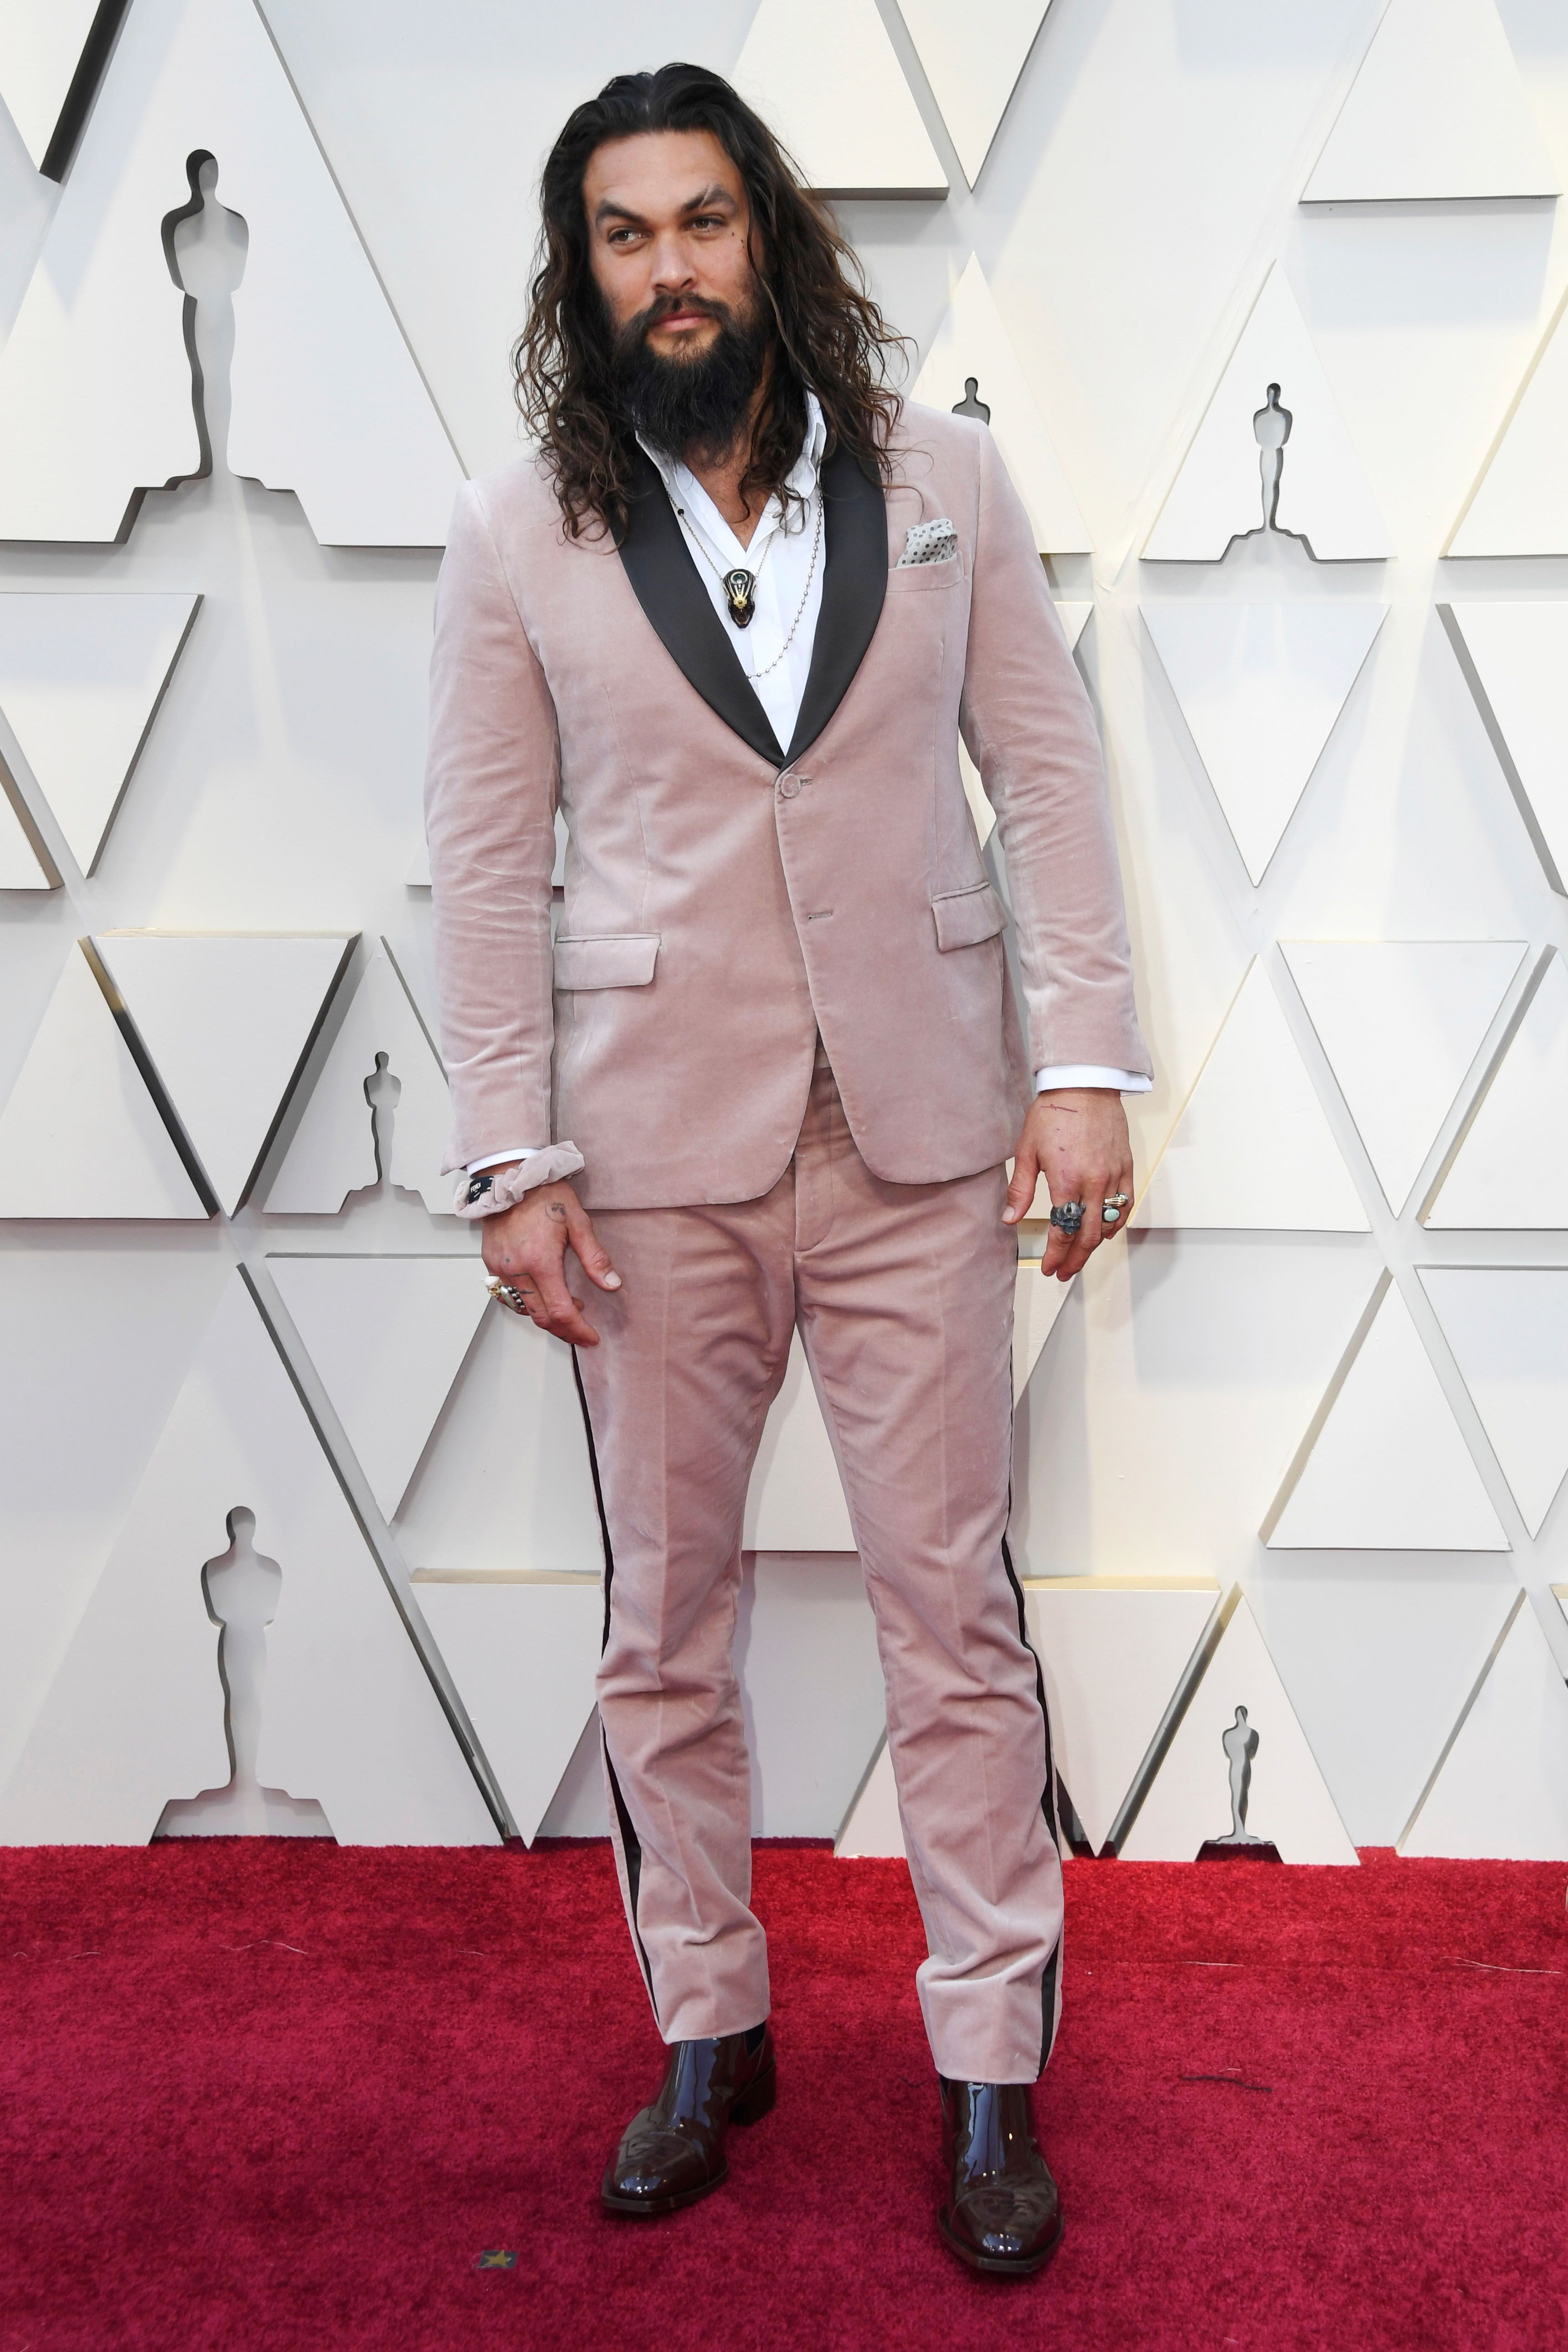 Jason Momoa at the Oscars in a pink Fendi tux with matching scrunchie.